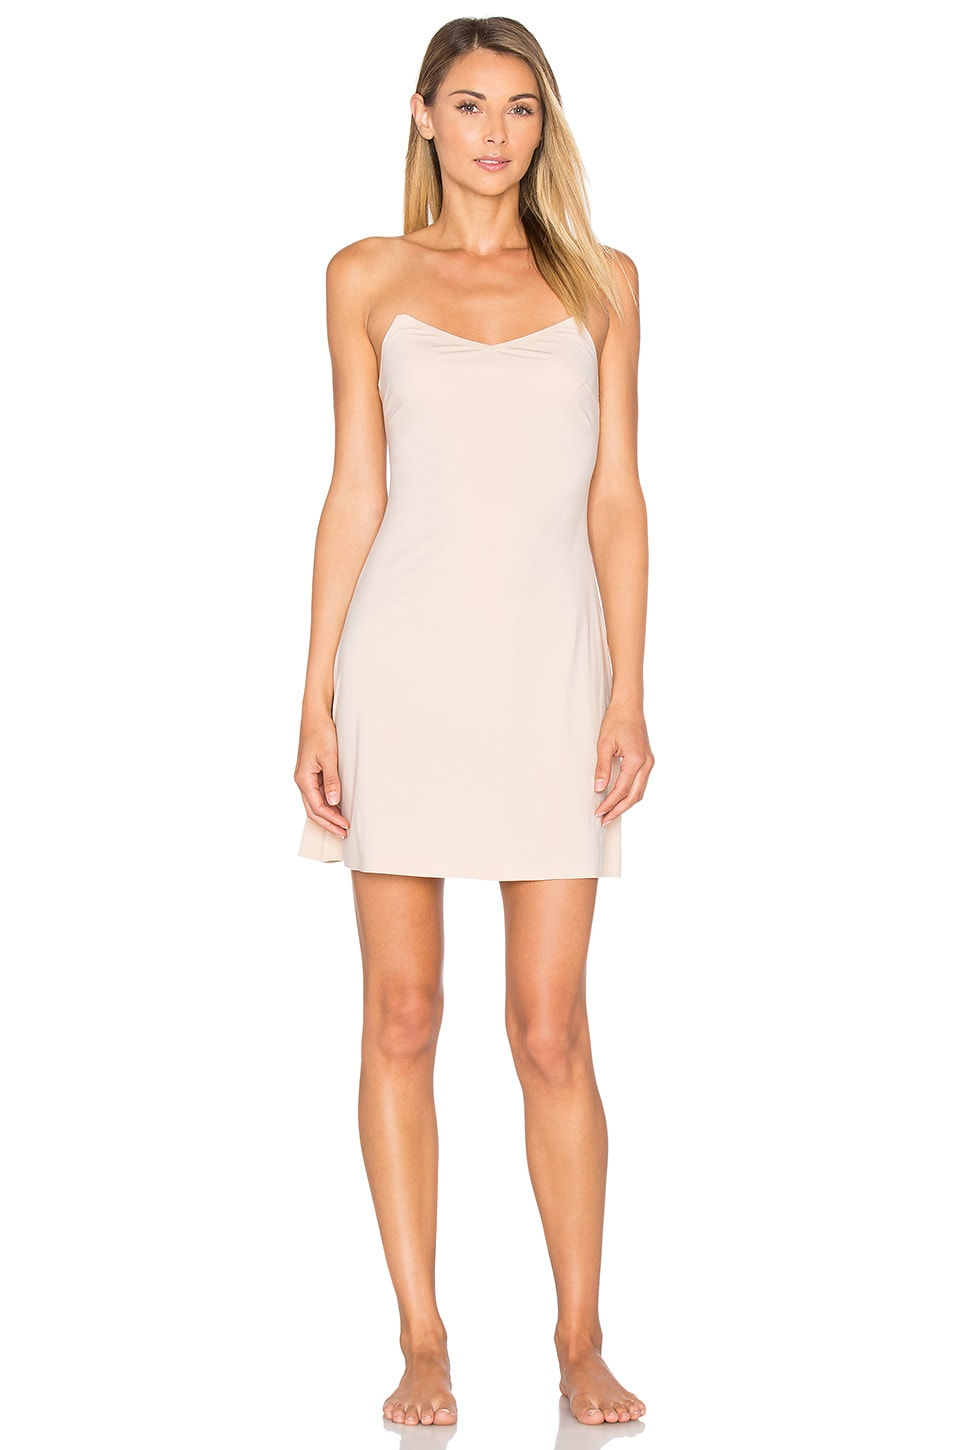 cae3812dc50ae SPANX Thinstincts Low Back Slip in Soft Nude | REVOLVE